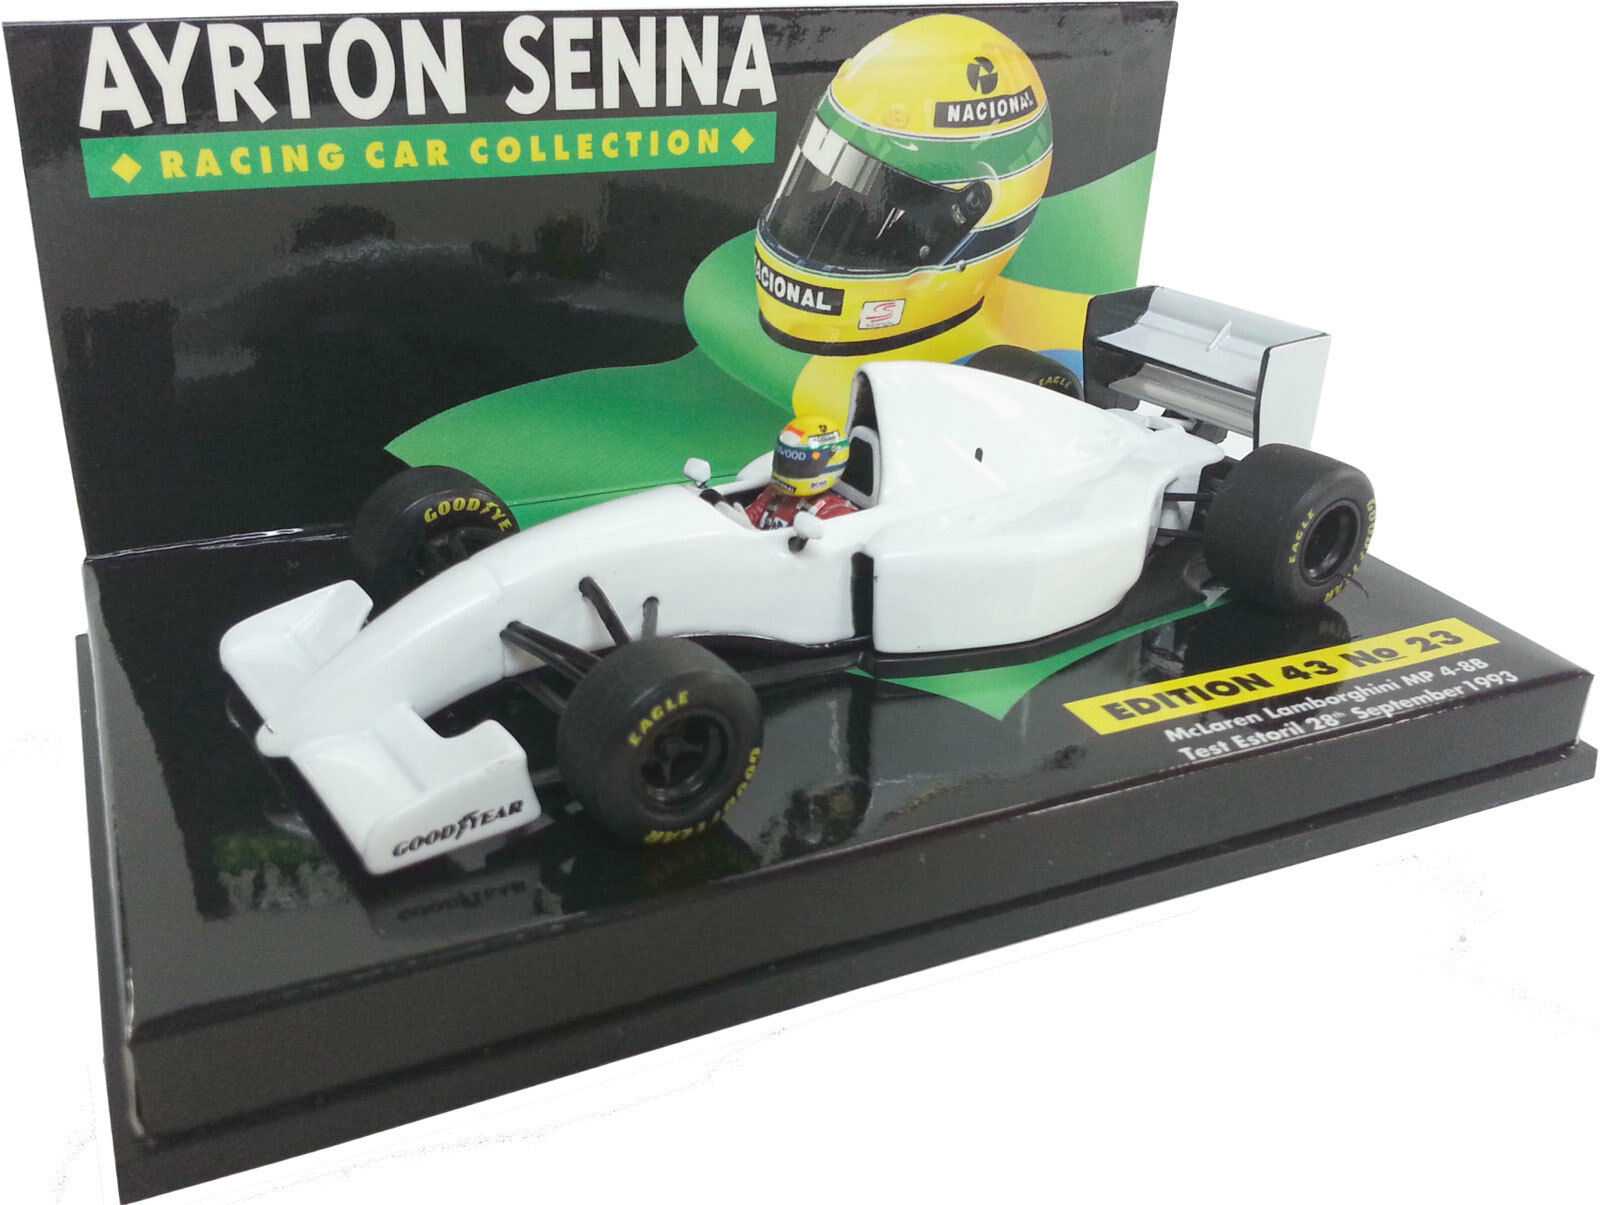 MINICHAMPS 1 43 1993 MCLAREN LAMBORGHINI MP4-8B TEST ESTORIL AYRTON SENNA